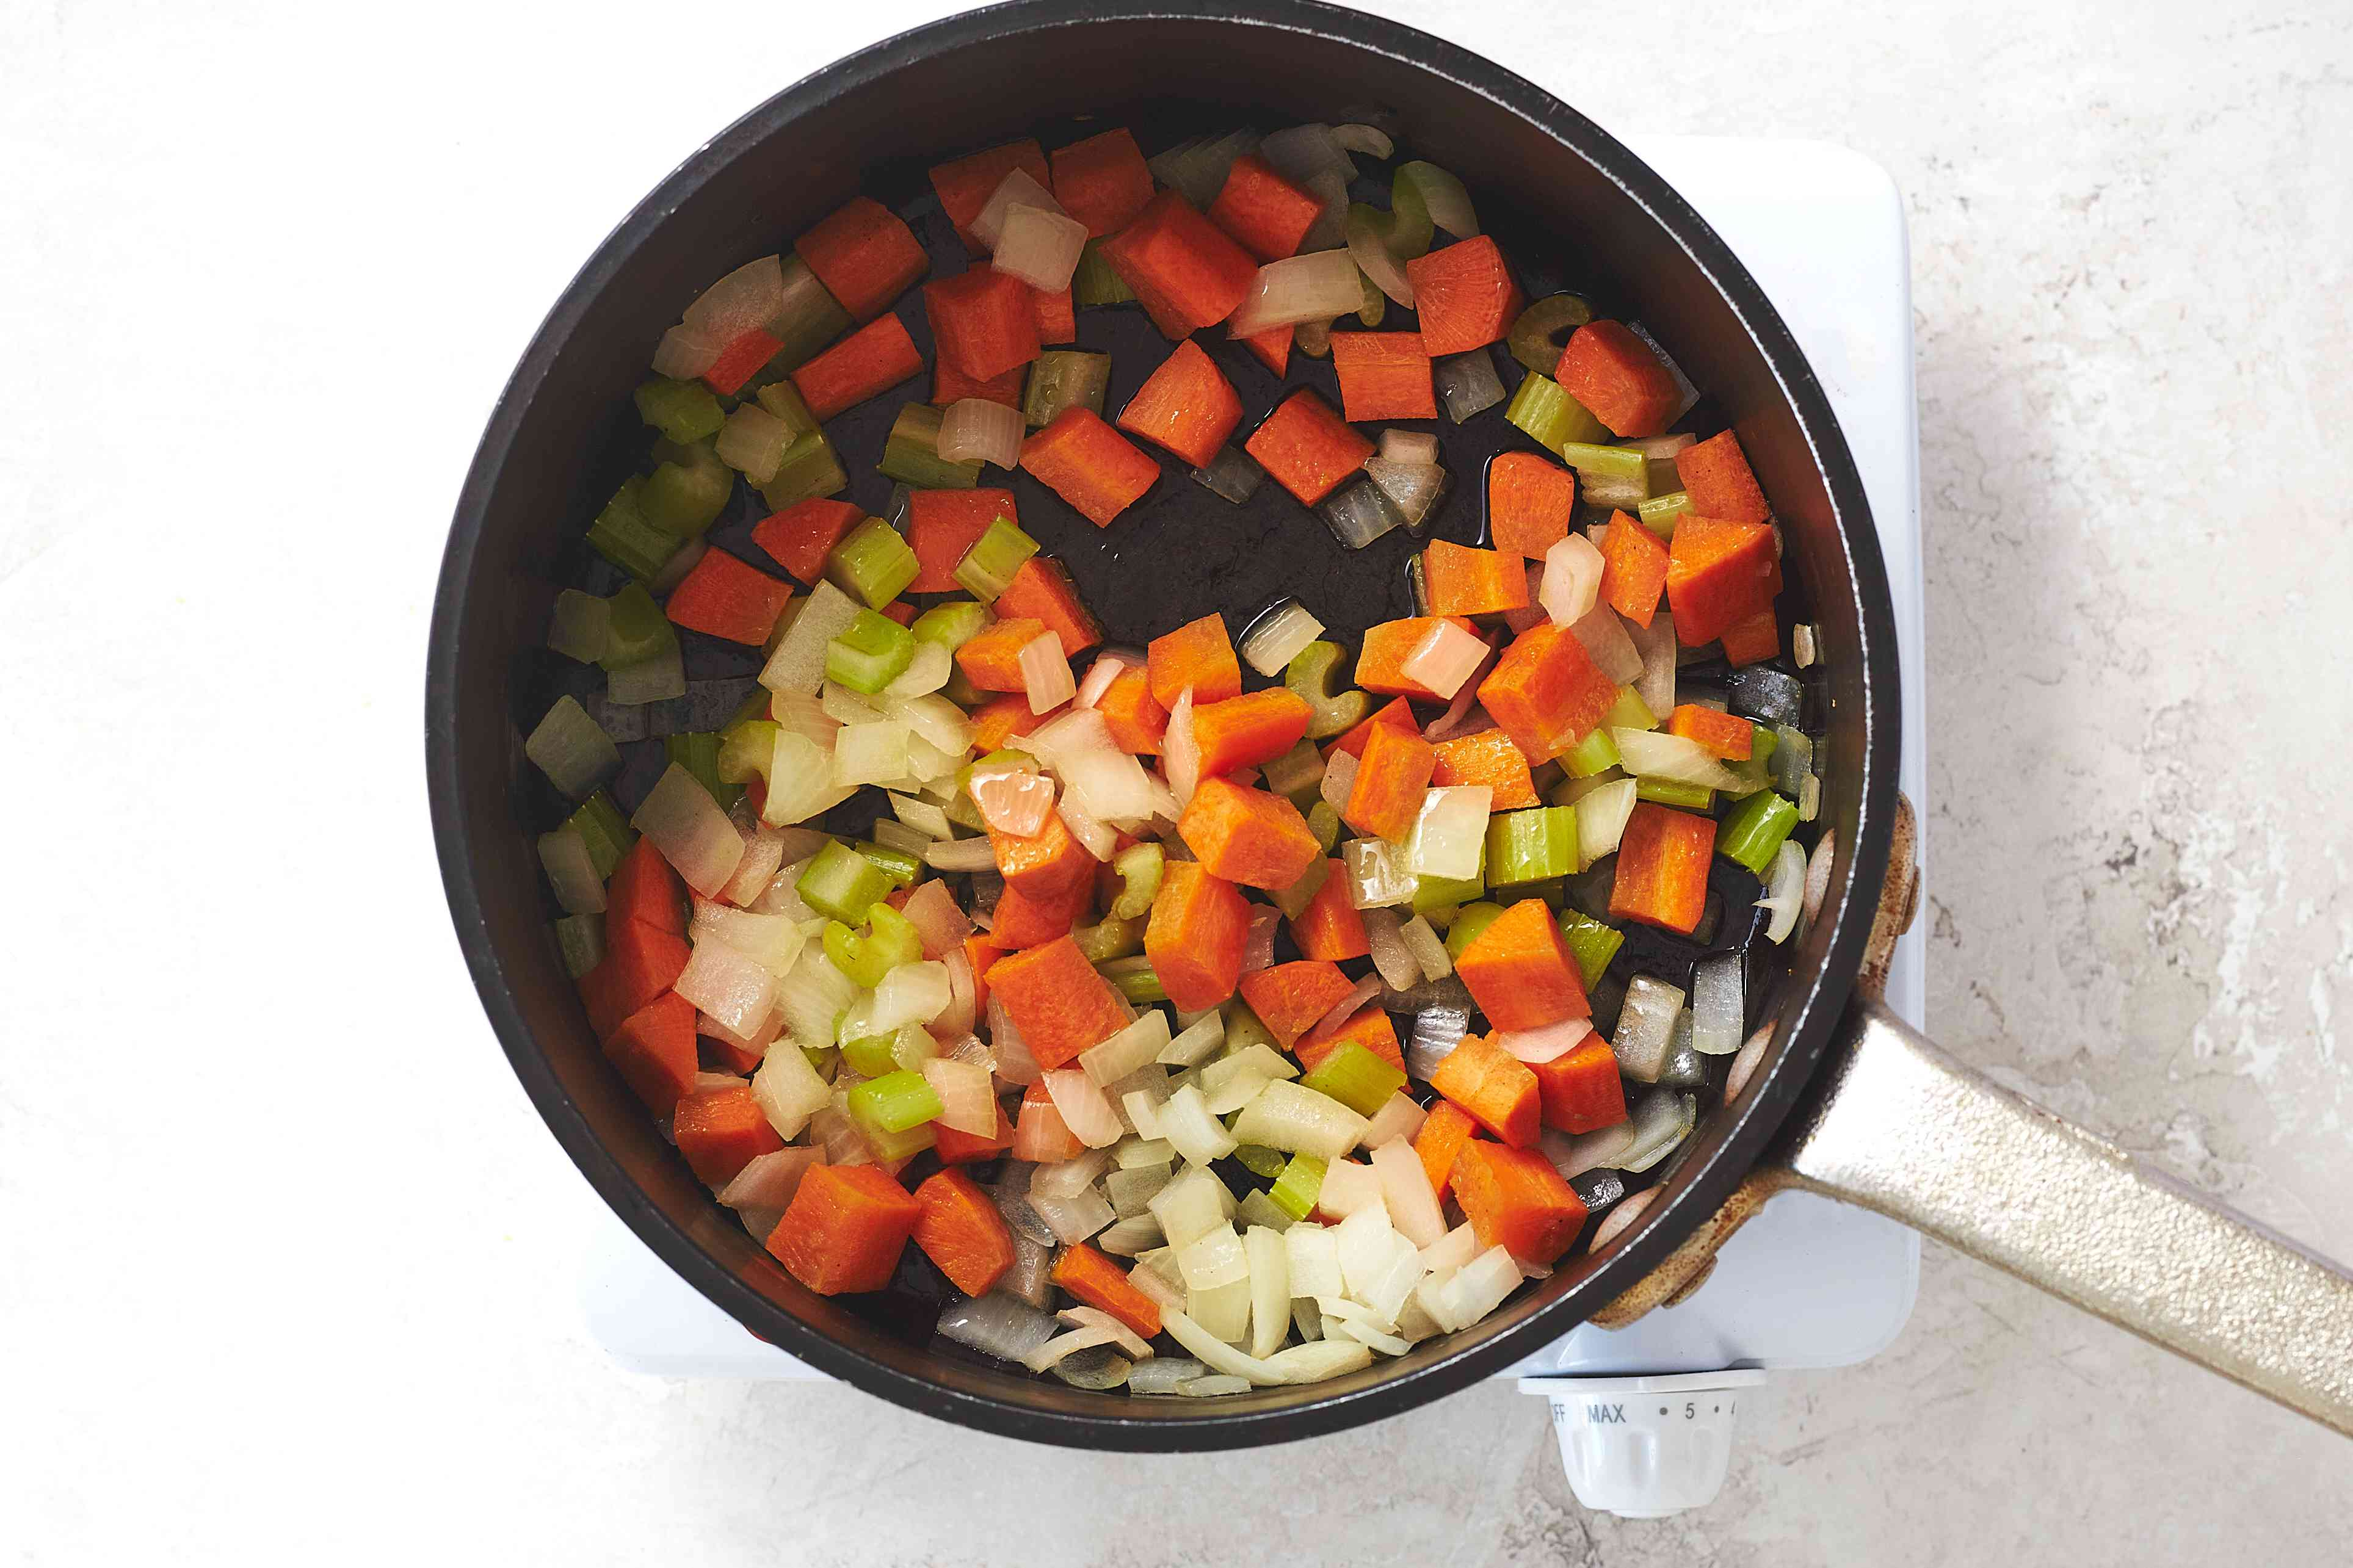 Sauté the onion, carrot, and celery in olive oil